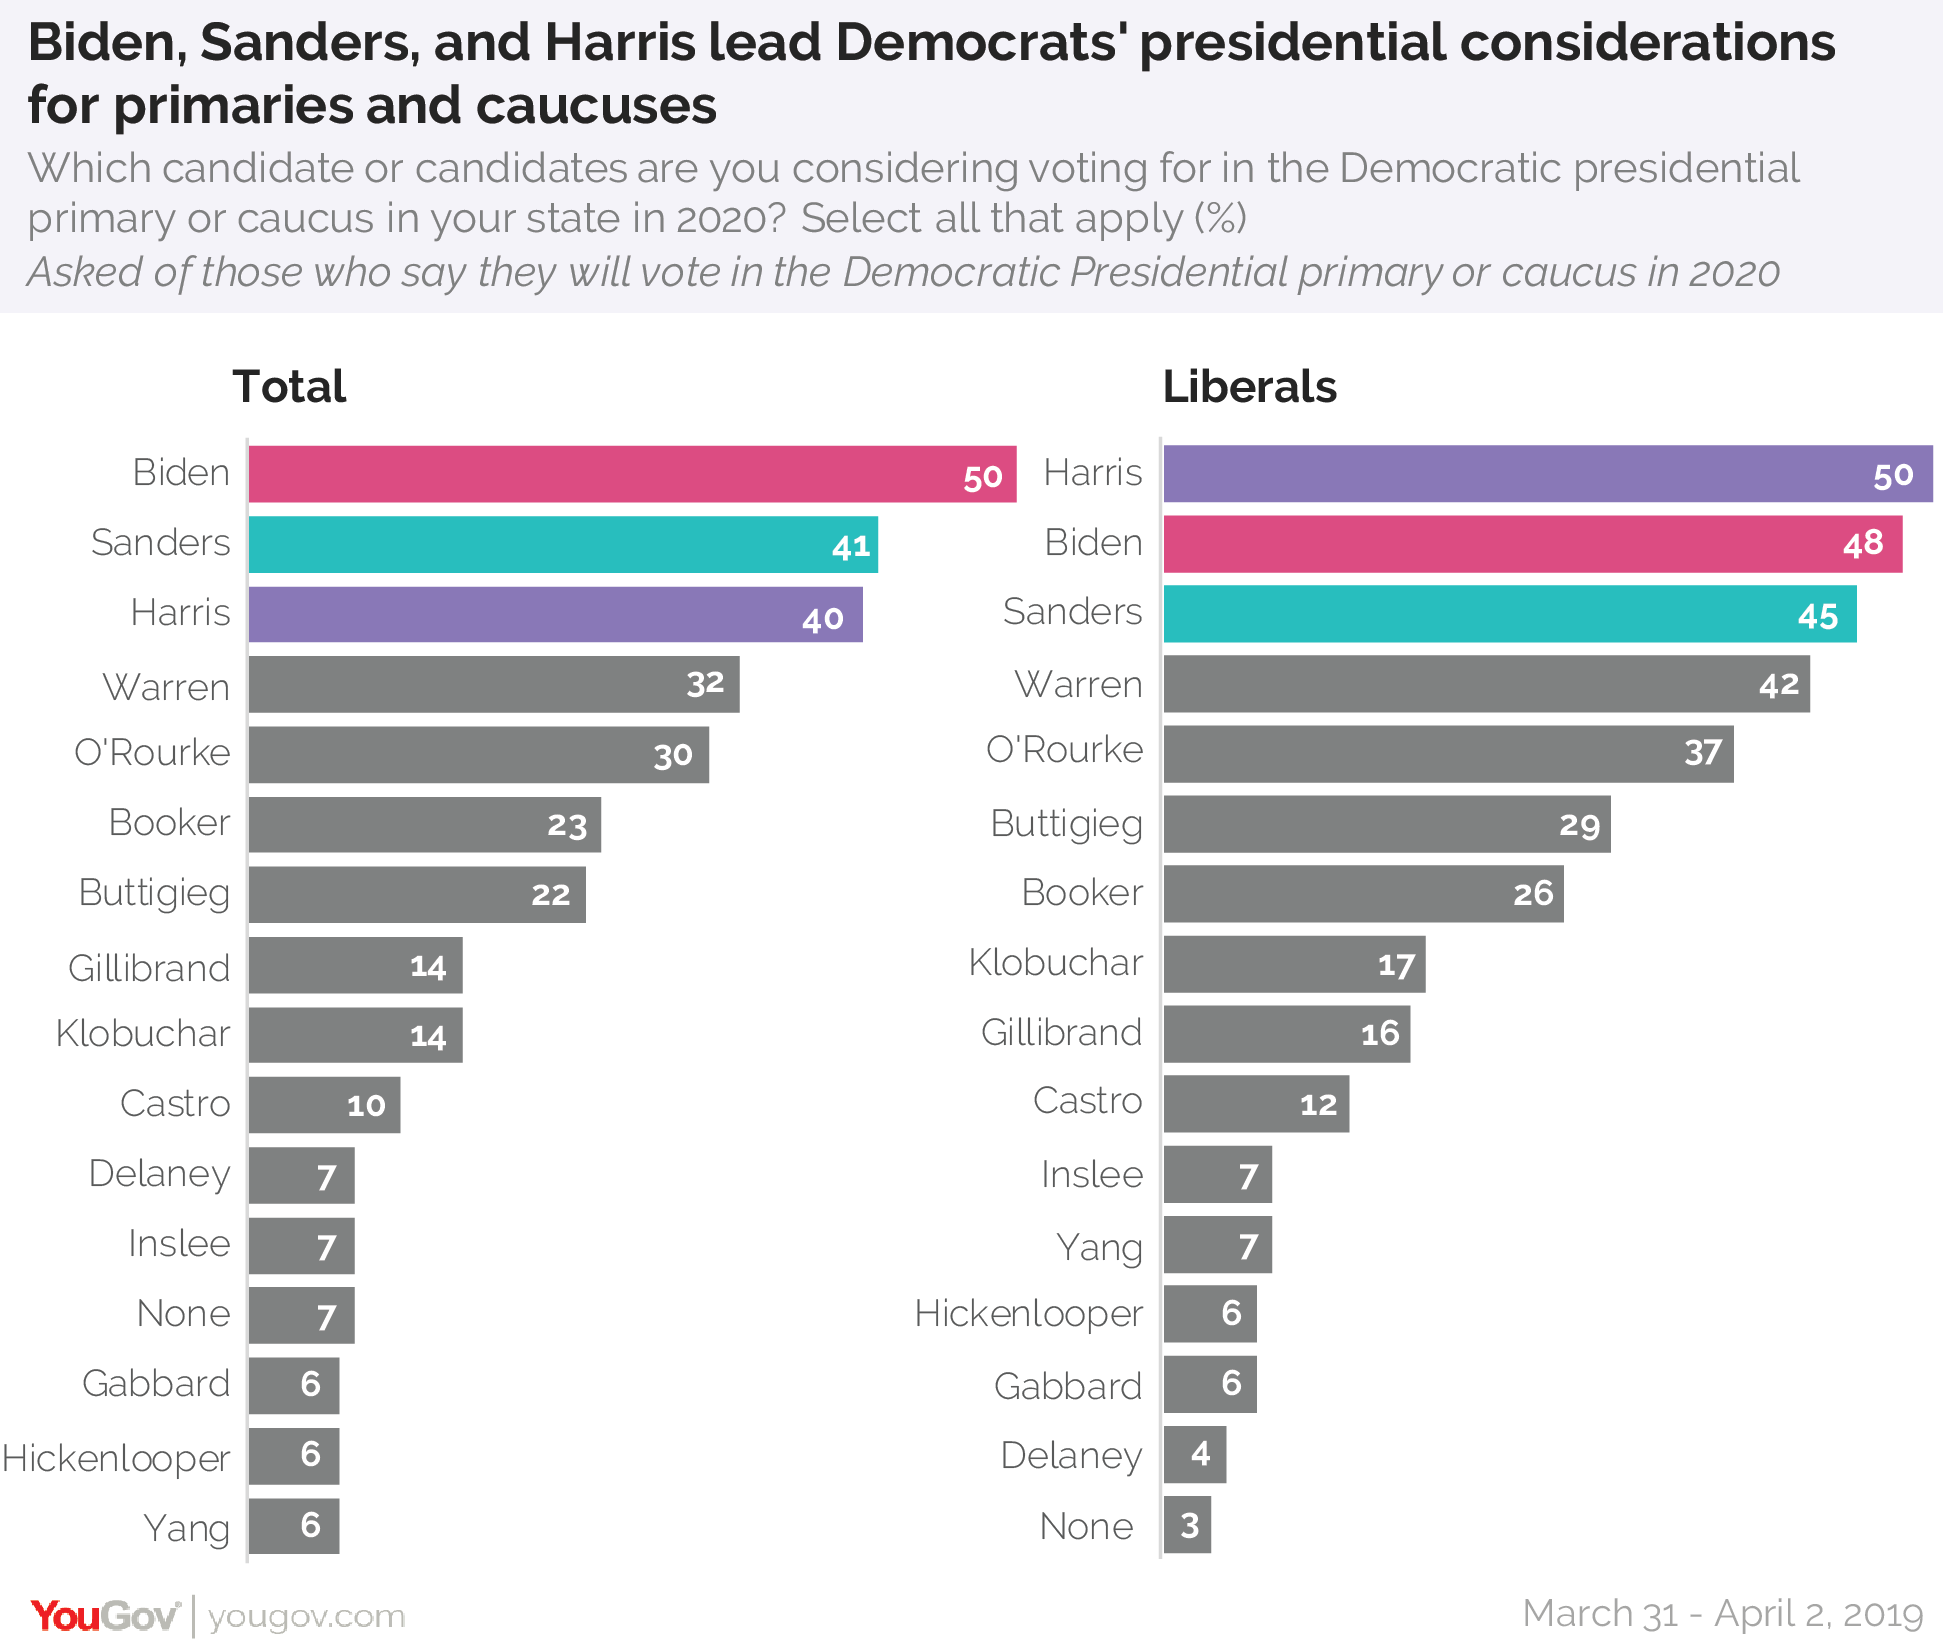 Biden, Sanders, and Harris lead Democrats' presidential considerations for primaries and caucuses in 2020